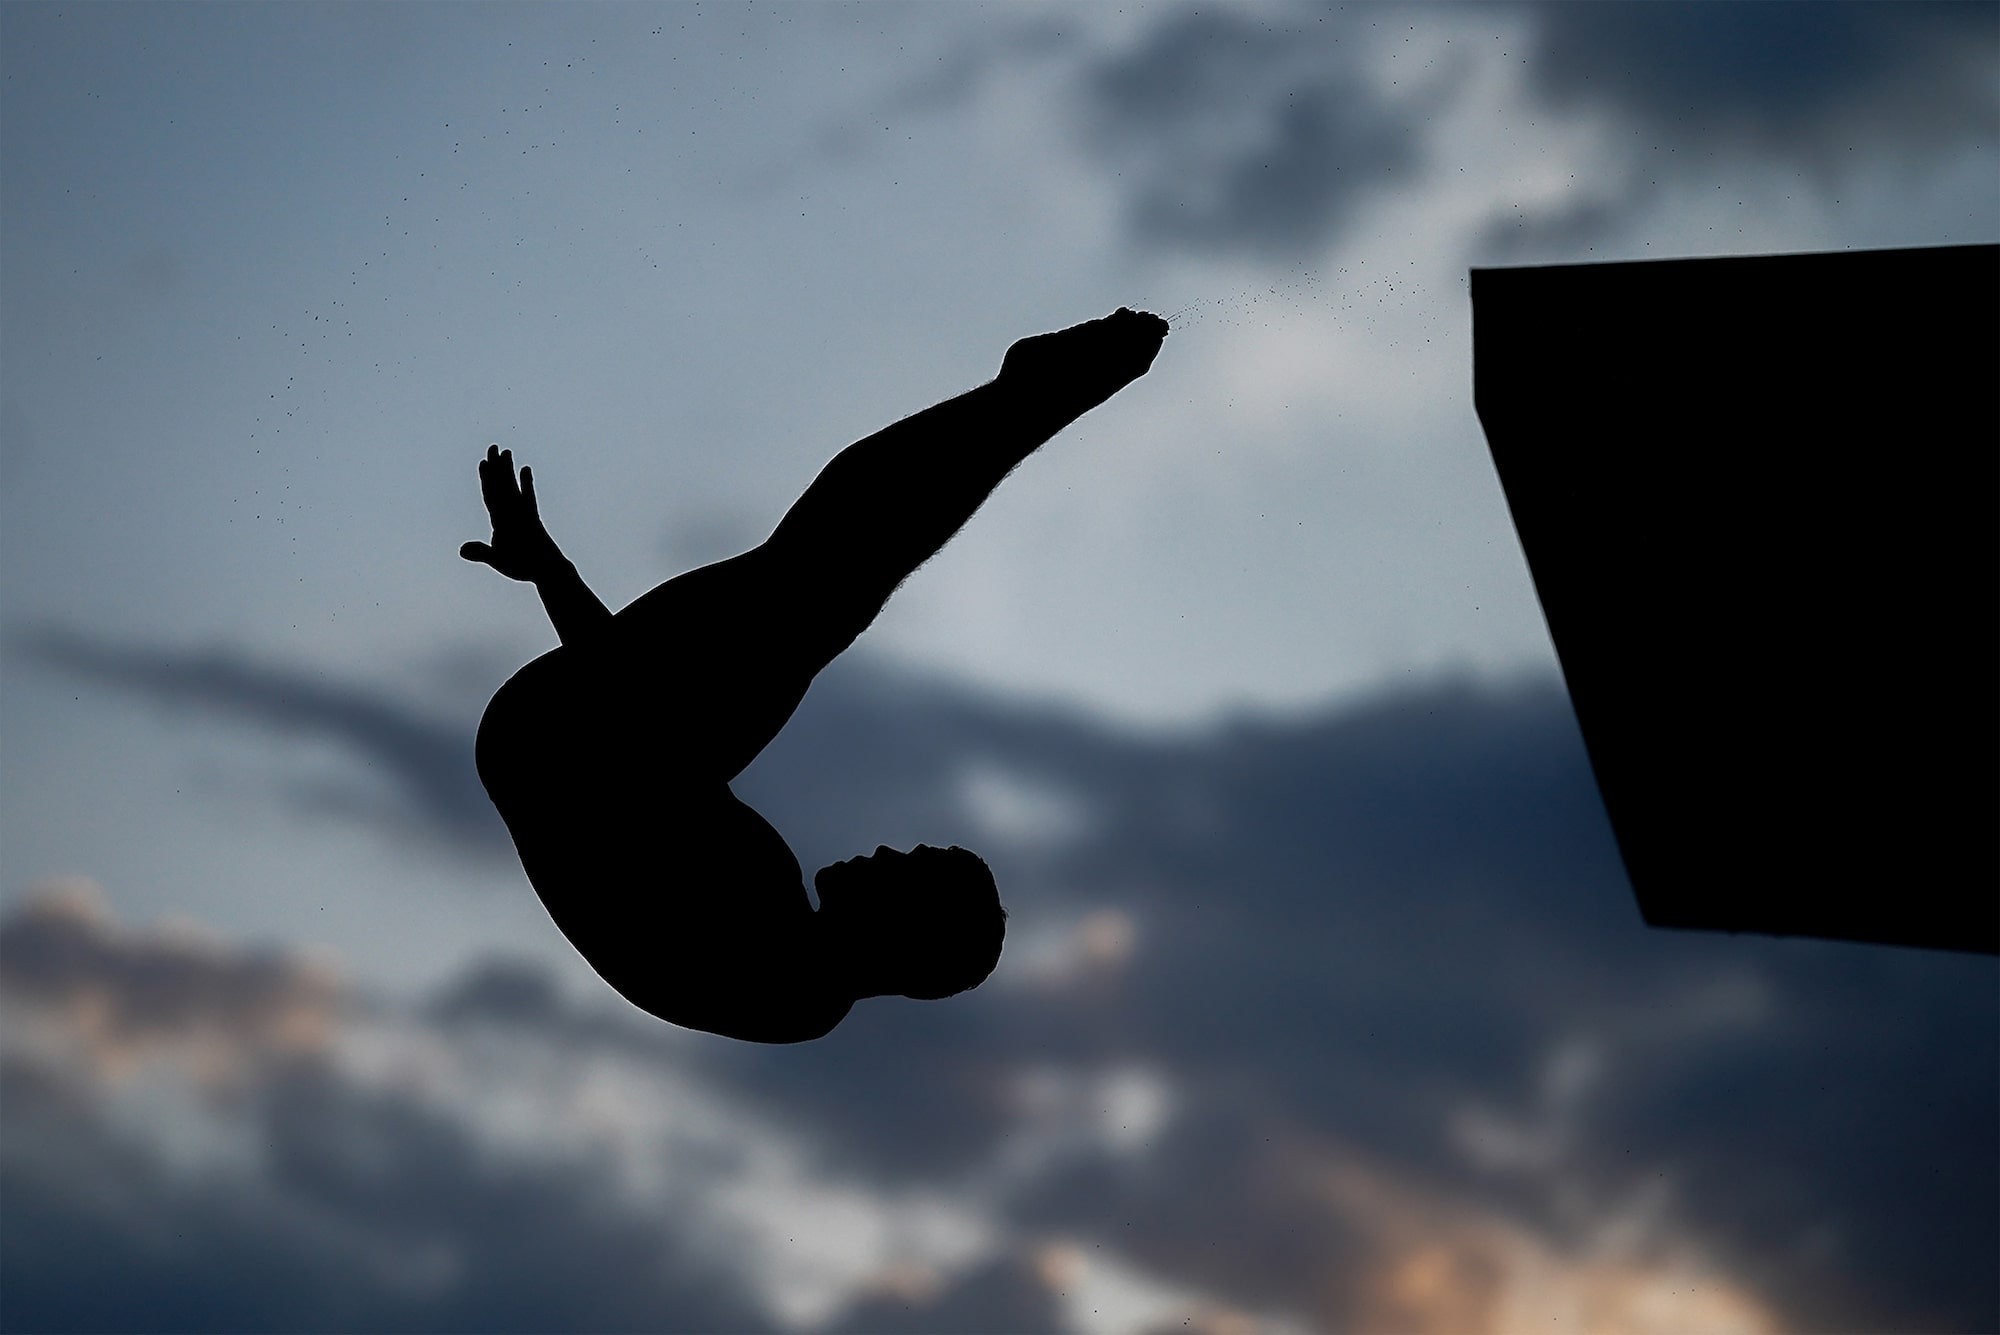 bob martin sony alpha 9II a diver leaps from a tall diving board silhouetted against a moody sky